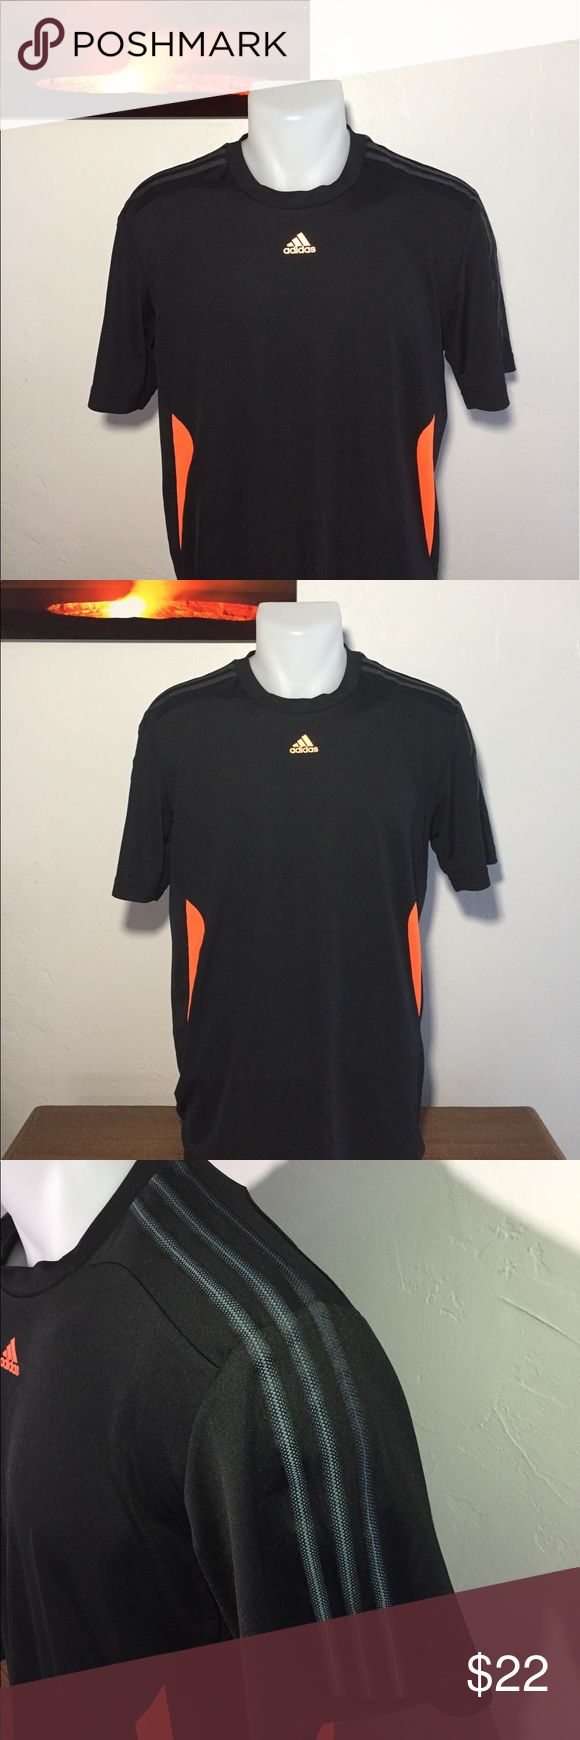 """Men's - Adidas Climalite black and orange shirt This Adidas workout shirt is in excellent condition!! The back and down the side under the arms are mesh and slightly sheer.   Approximate measurements: Total length - 28 1/4"""" Armpit to armpit - 22"""" Sleeve length - 9 3/4""""  M1050 adidas Shirts"""